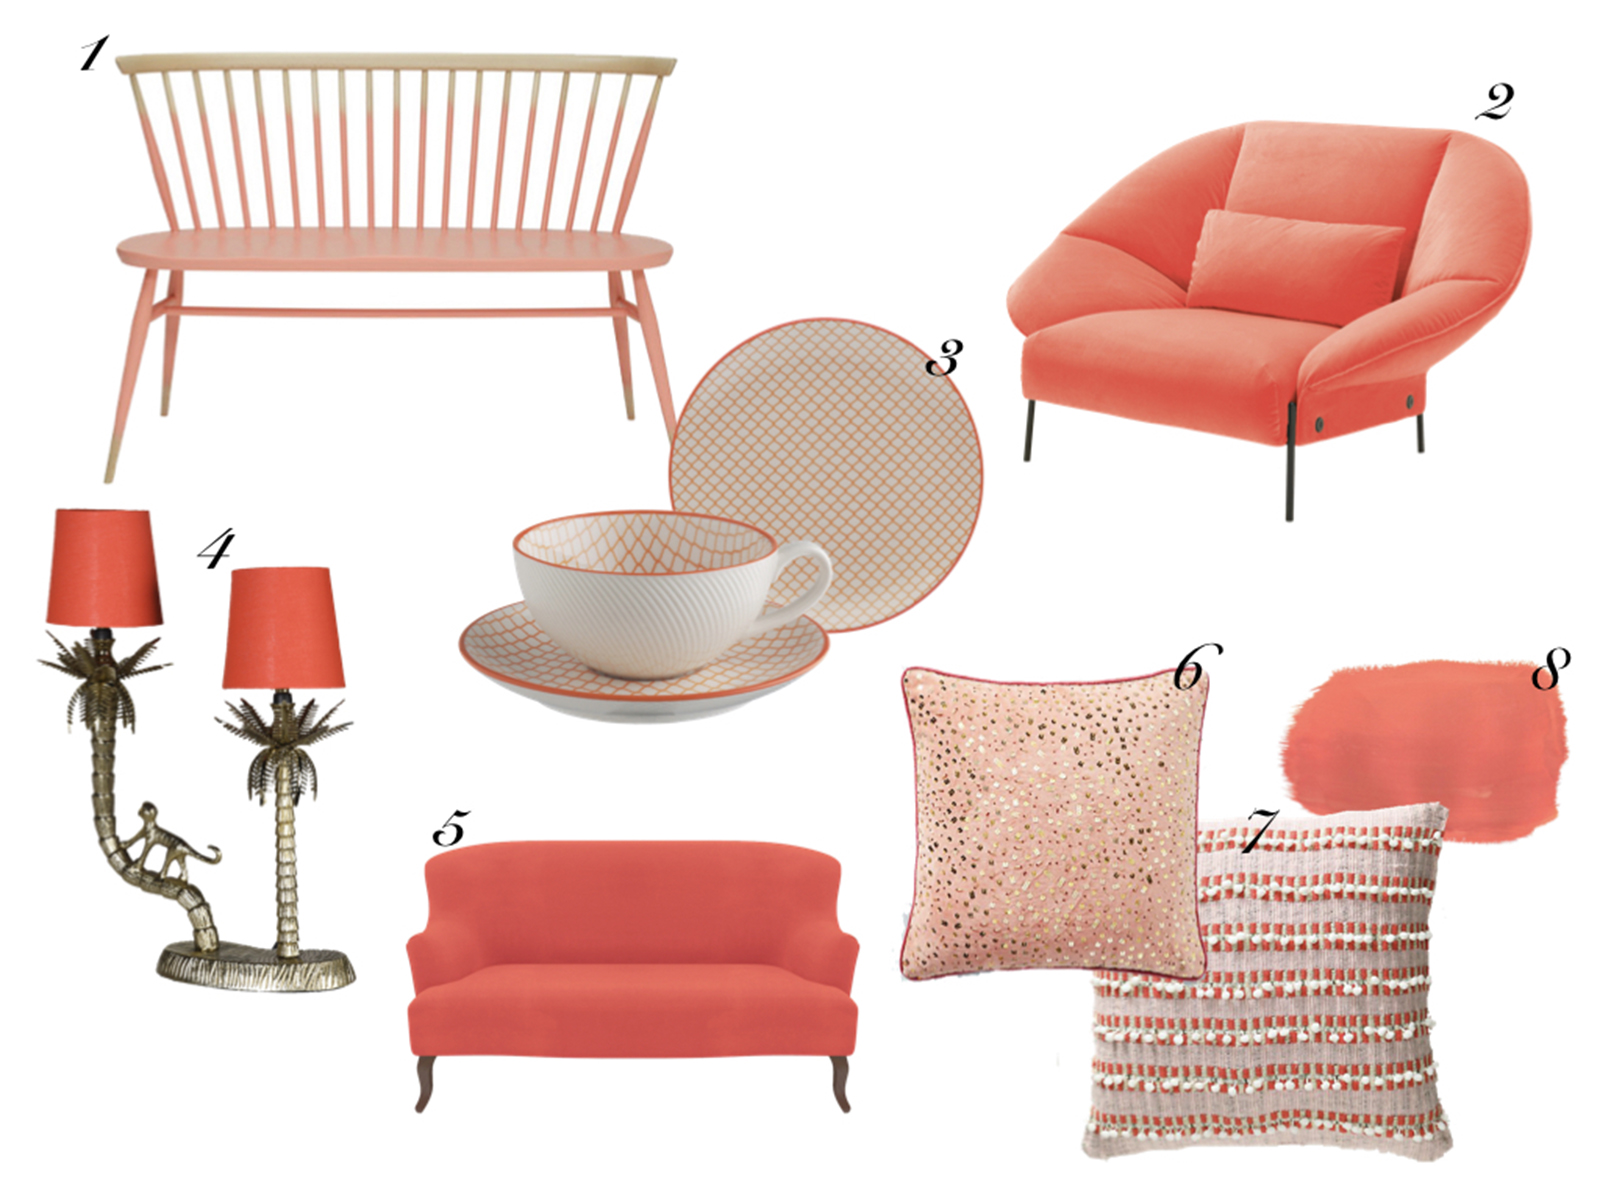 Interior designer and colour lover Sophie Robinson picks her favourite interior products following the Pantone colour of the year Living Coral